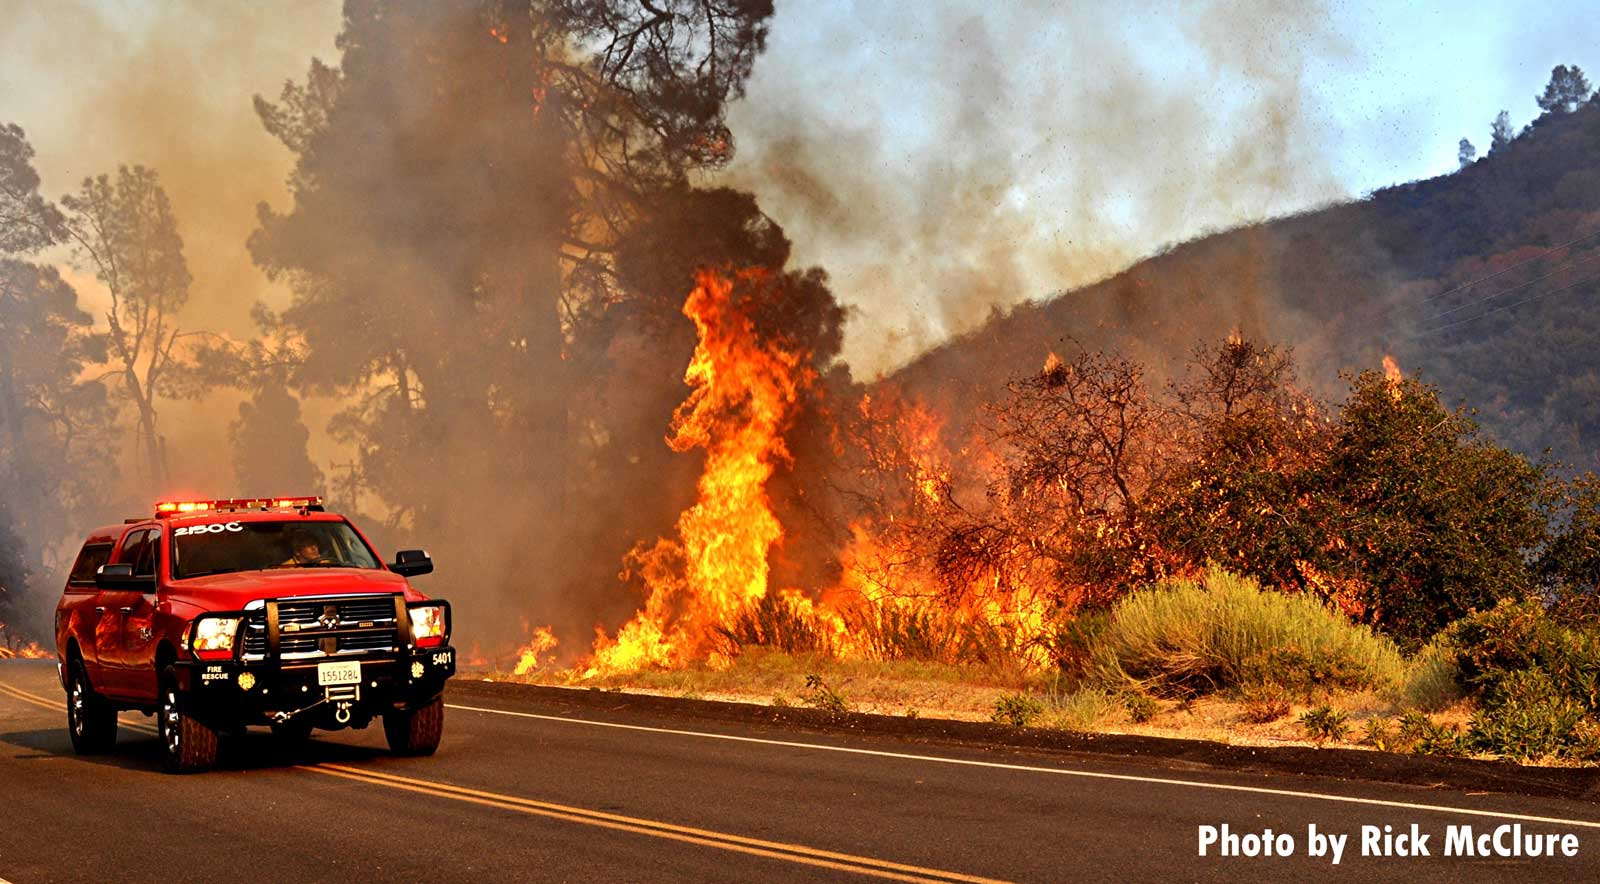 Fire vehicle near road with wildfire burning